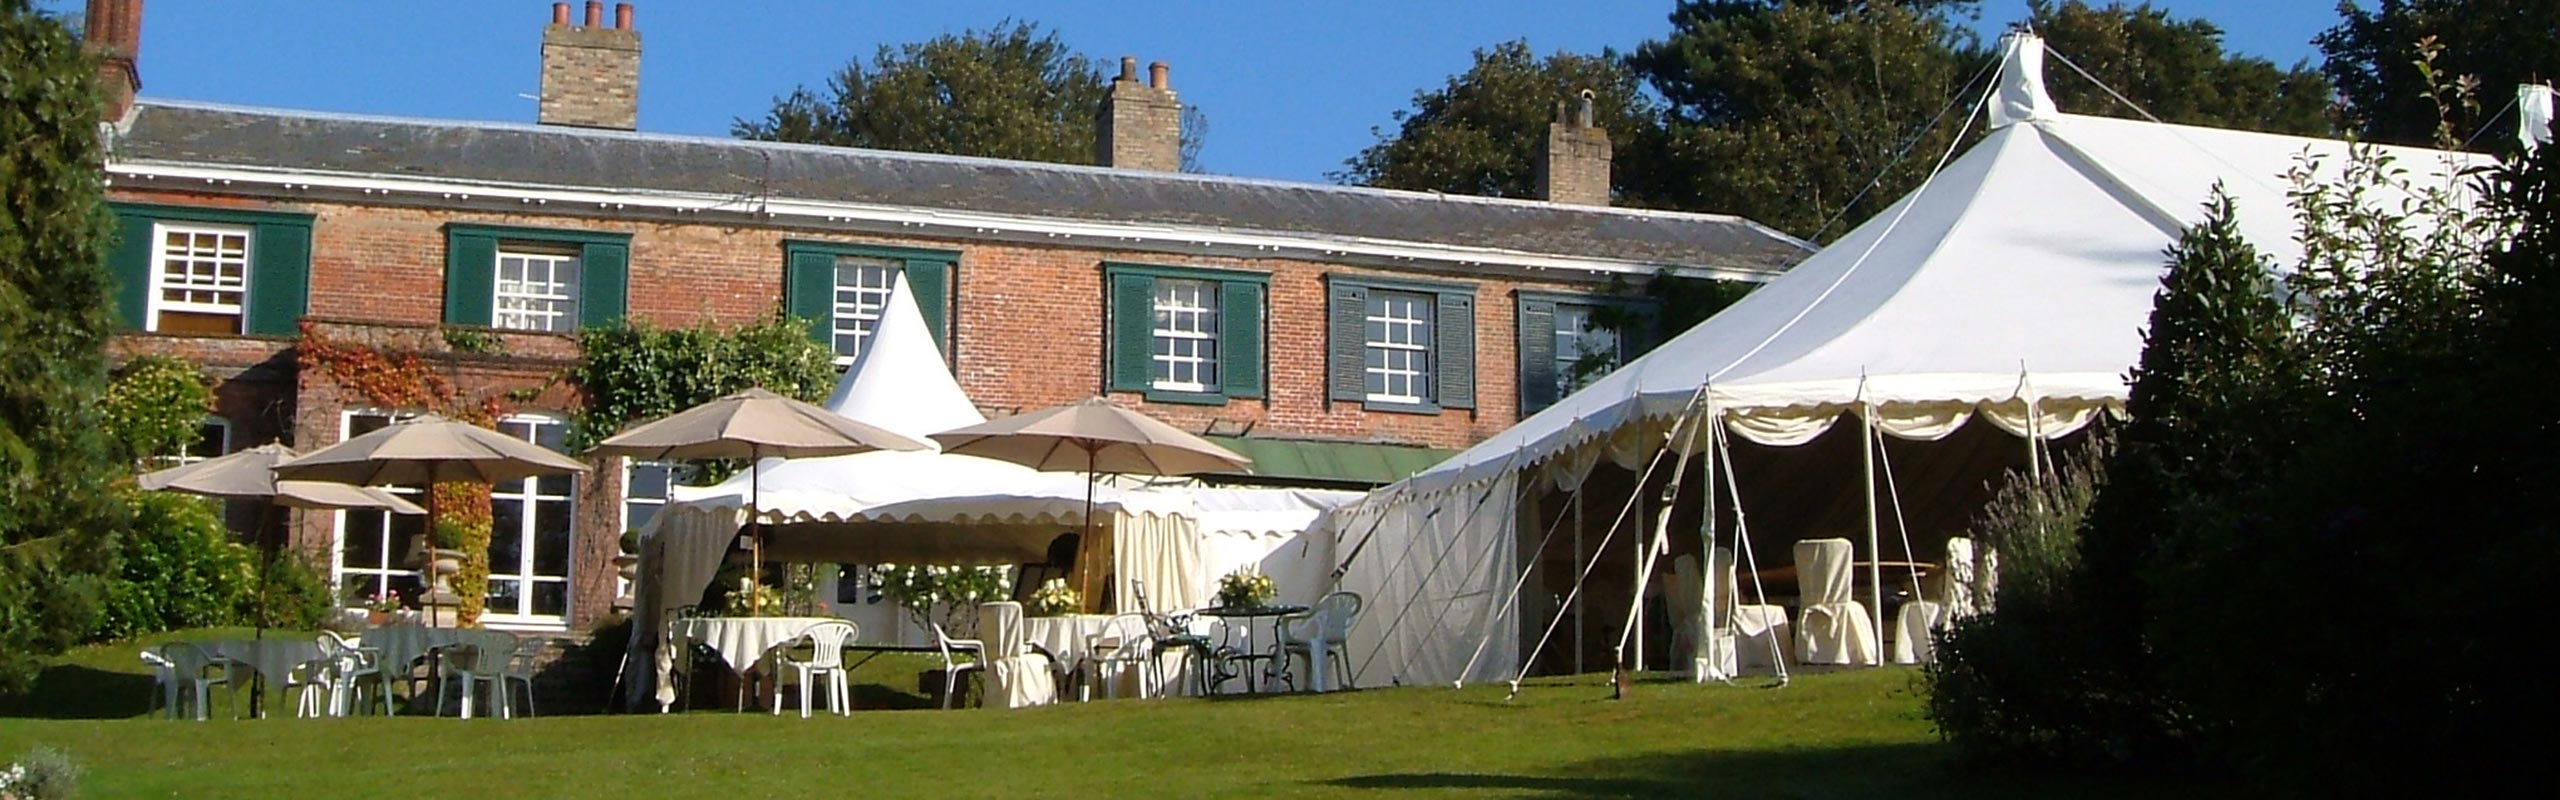 Wedding Marquee Hire Packages